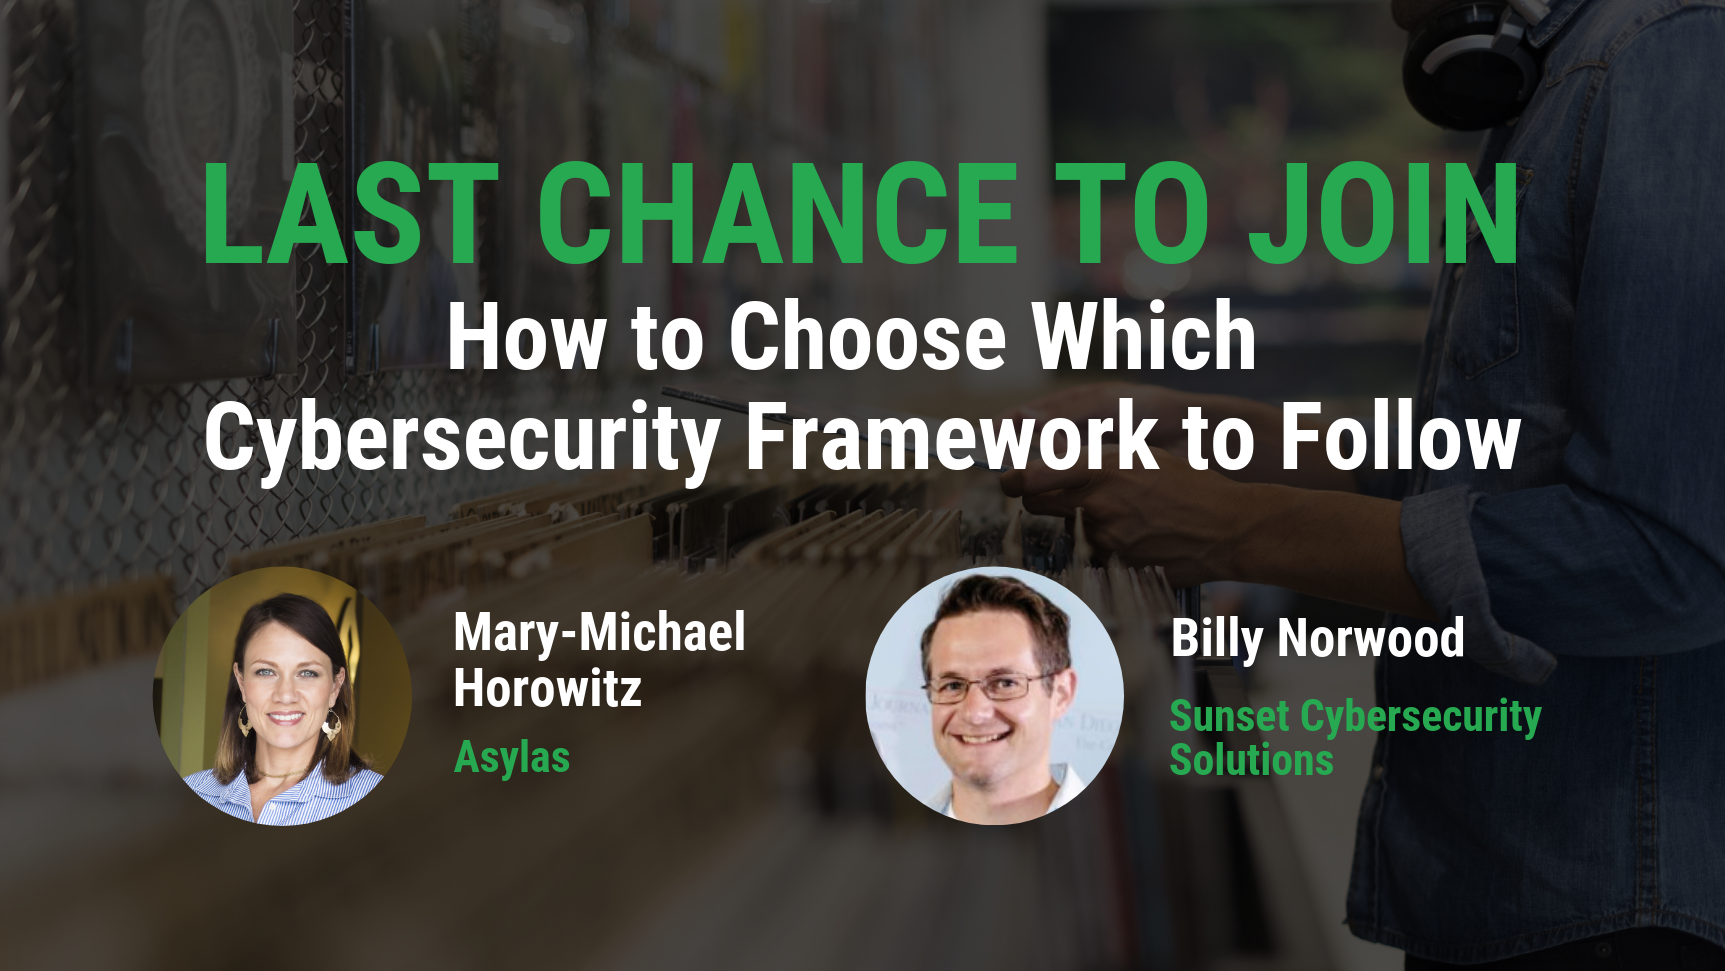 Choosing a cybersecurity framework